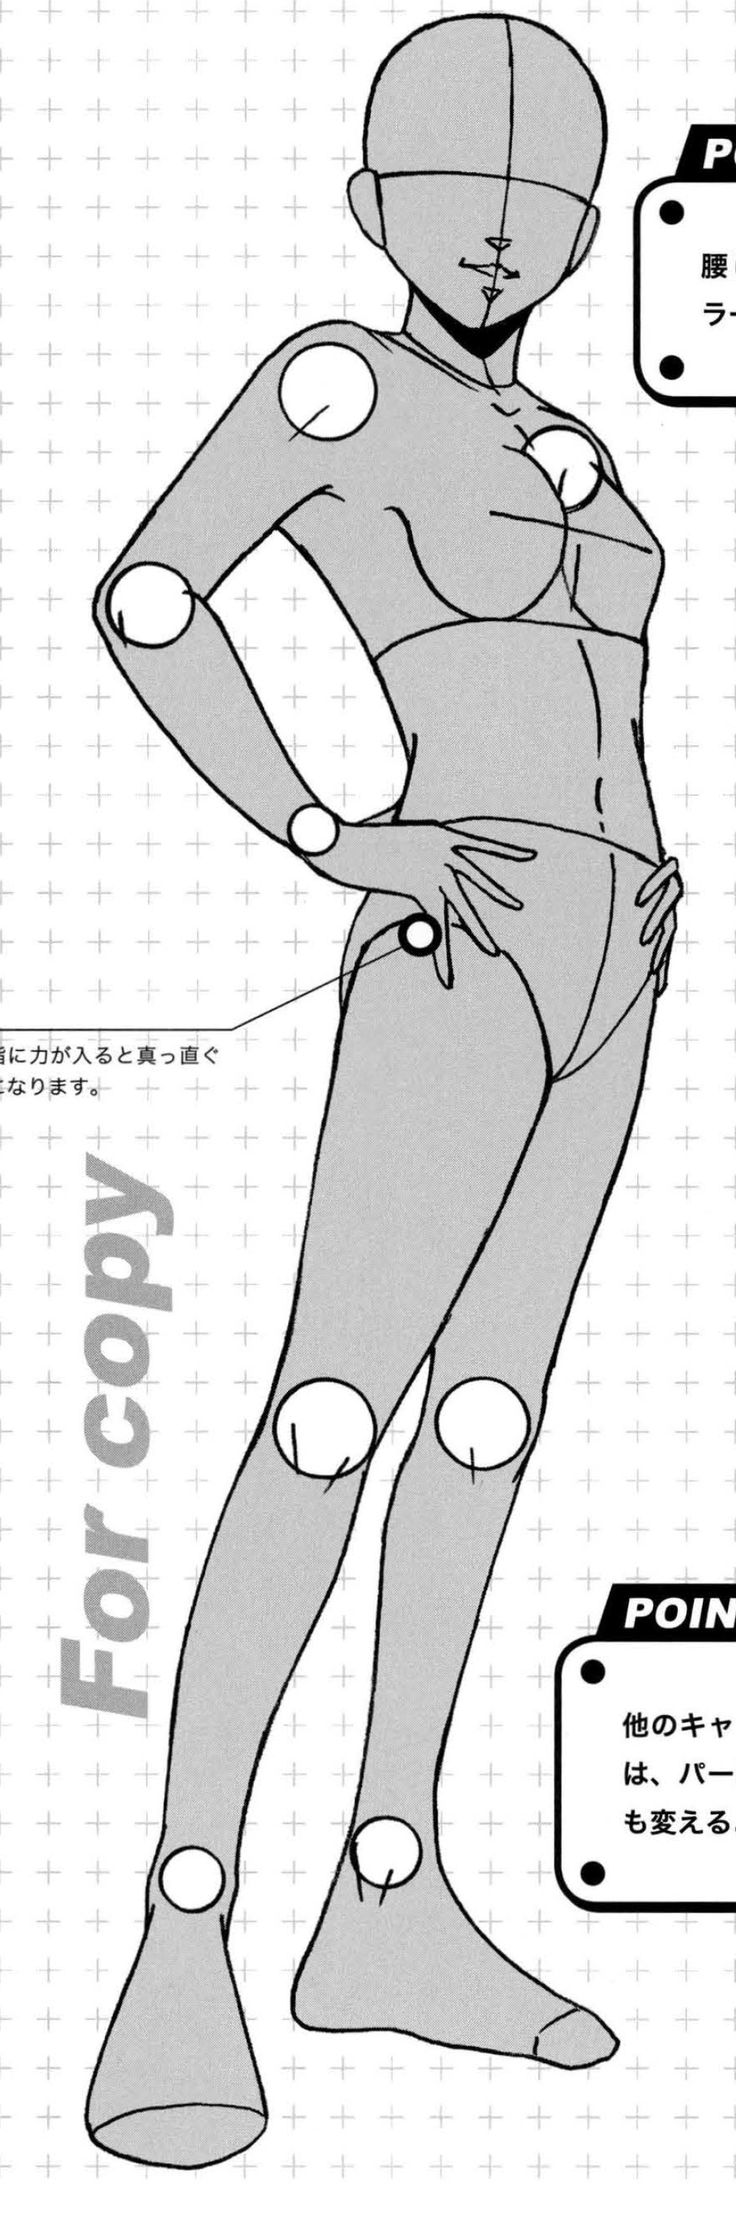 It is a graphic of Dashing Hands On Hips Pose Drawing